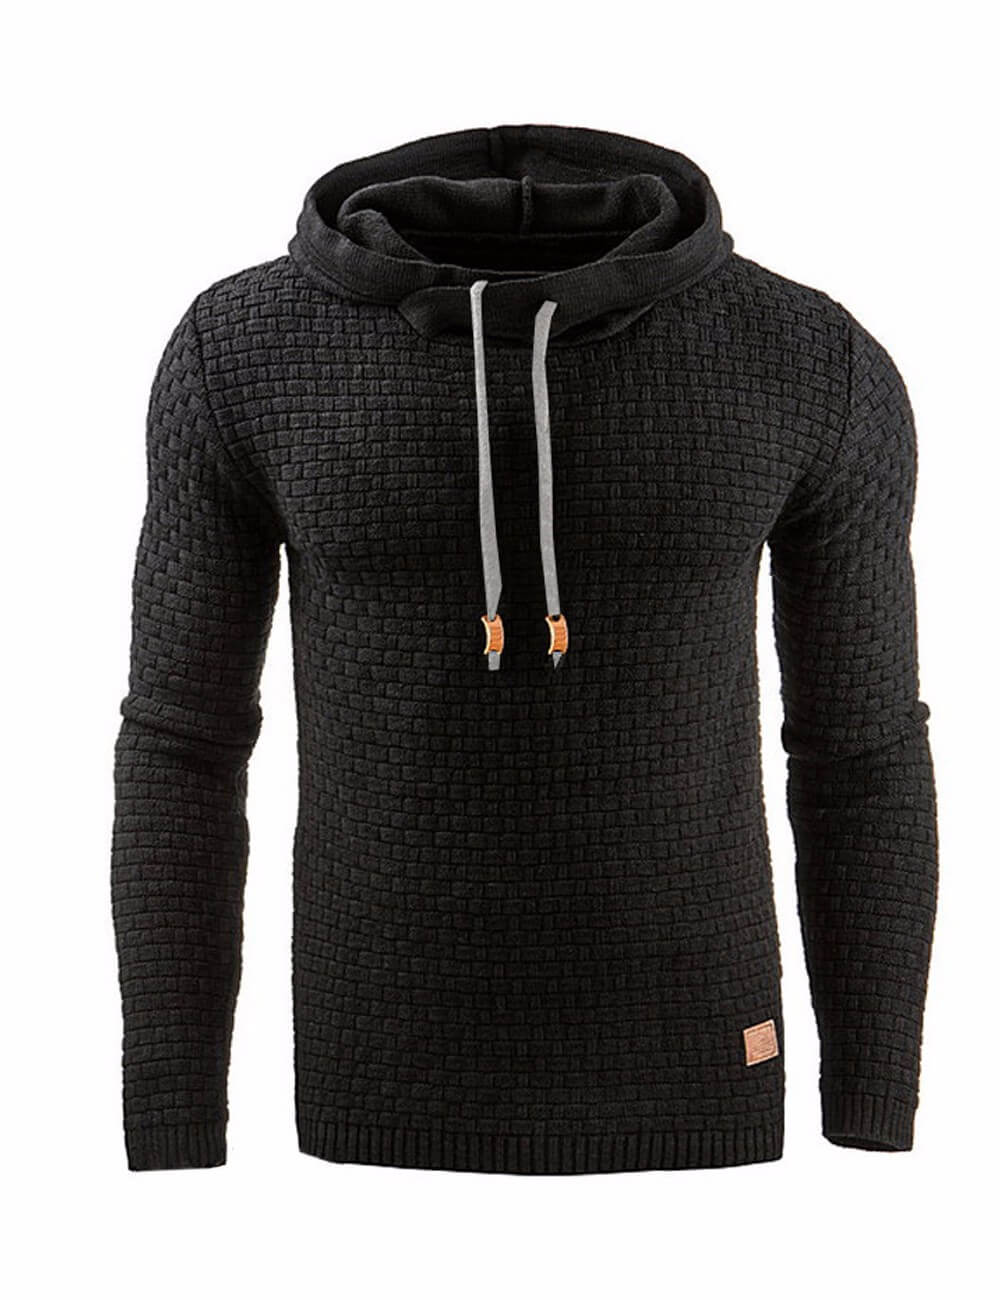 Men's Autumn Winter Casual Long Sleeve Funnel Neck Plaid Jacquard Pullover Hooded Top Sweatshirt Hoodies